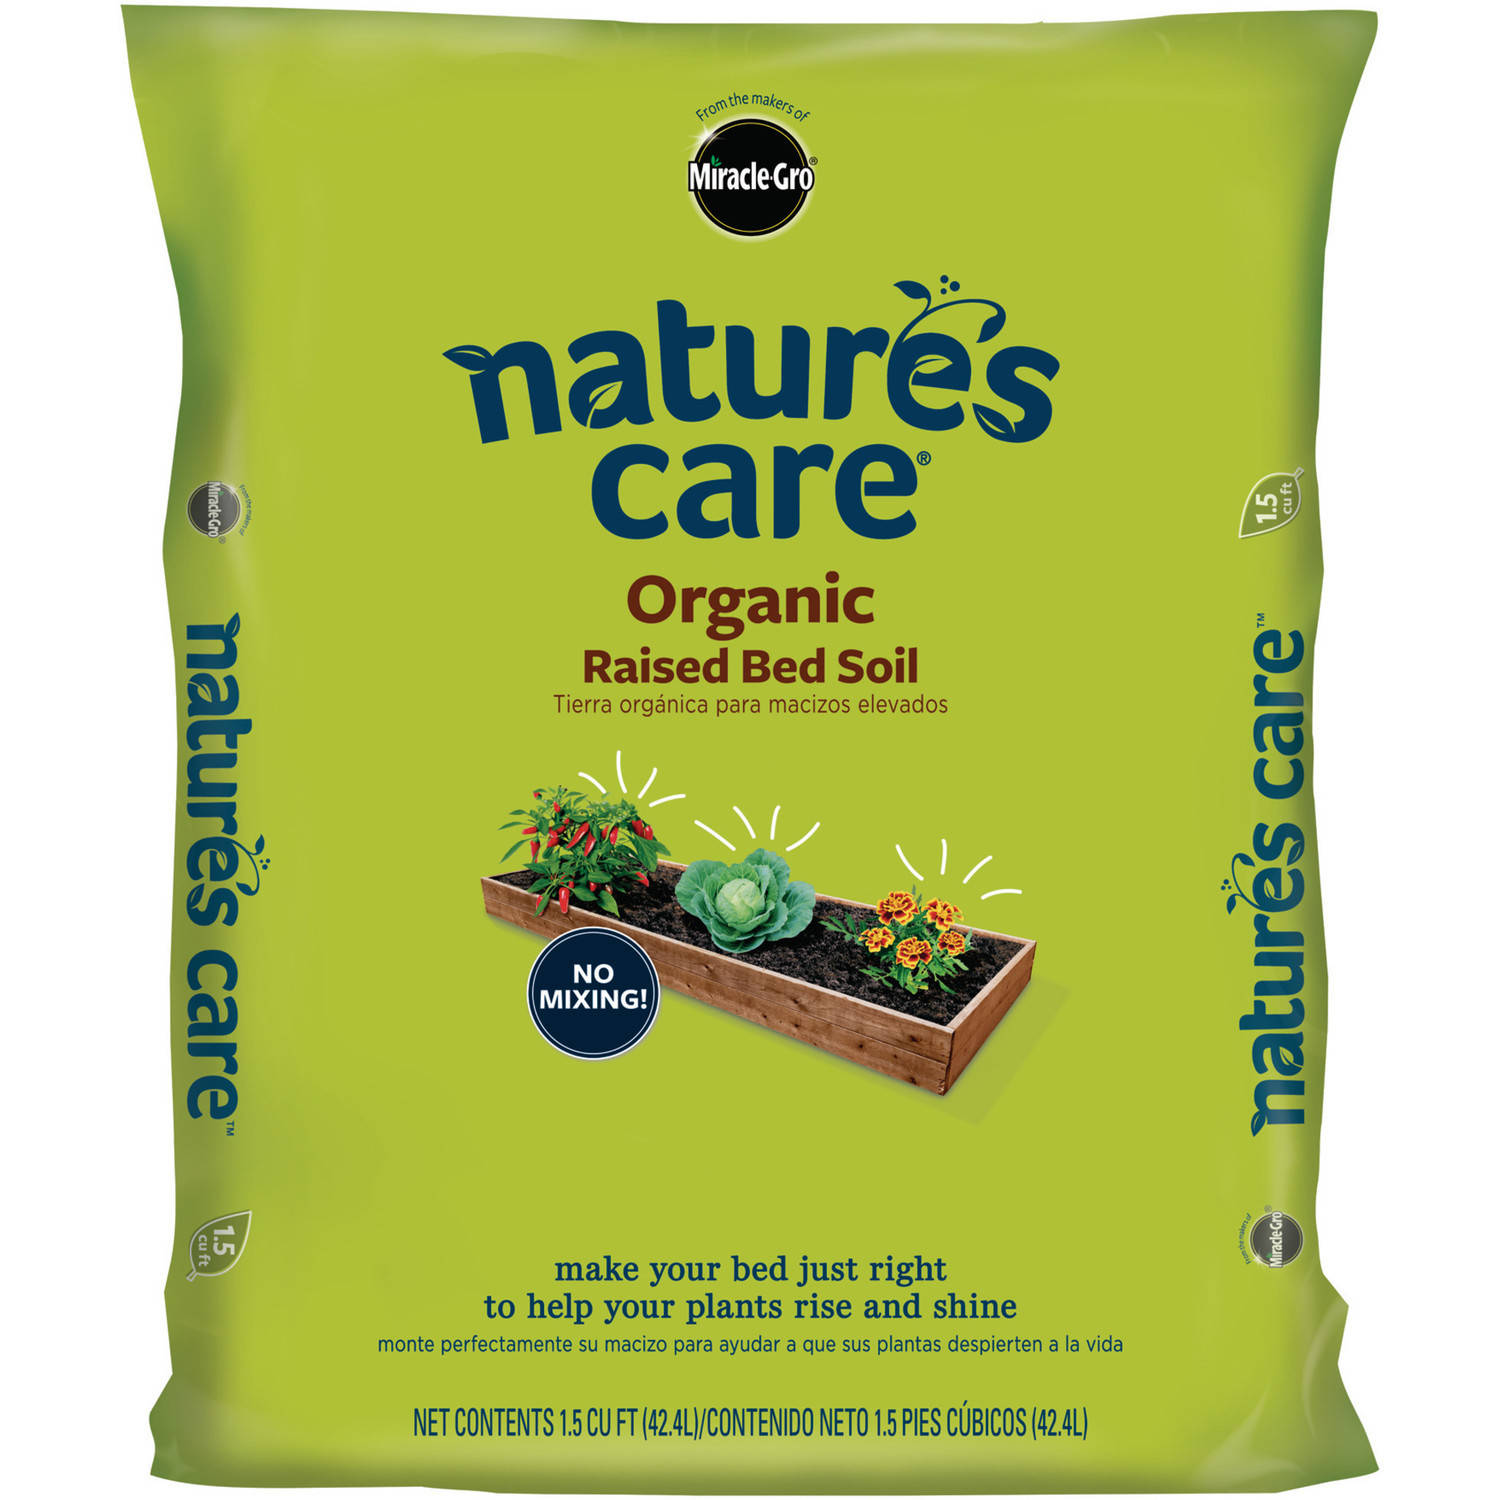 Miracle-Gro Nature's Care Organic Raised Bed Soil